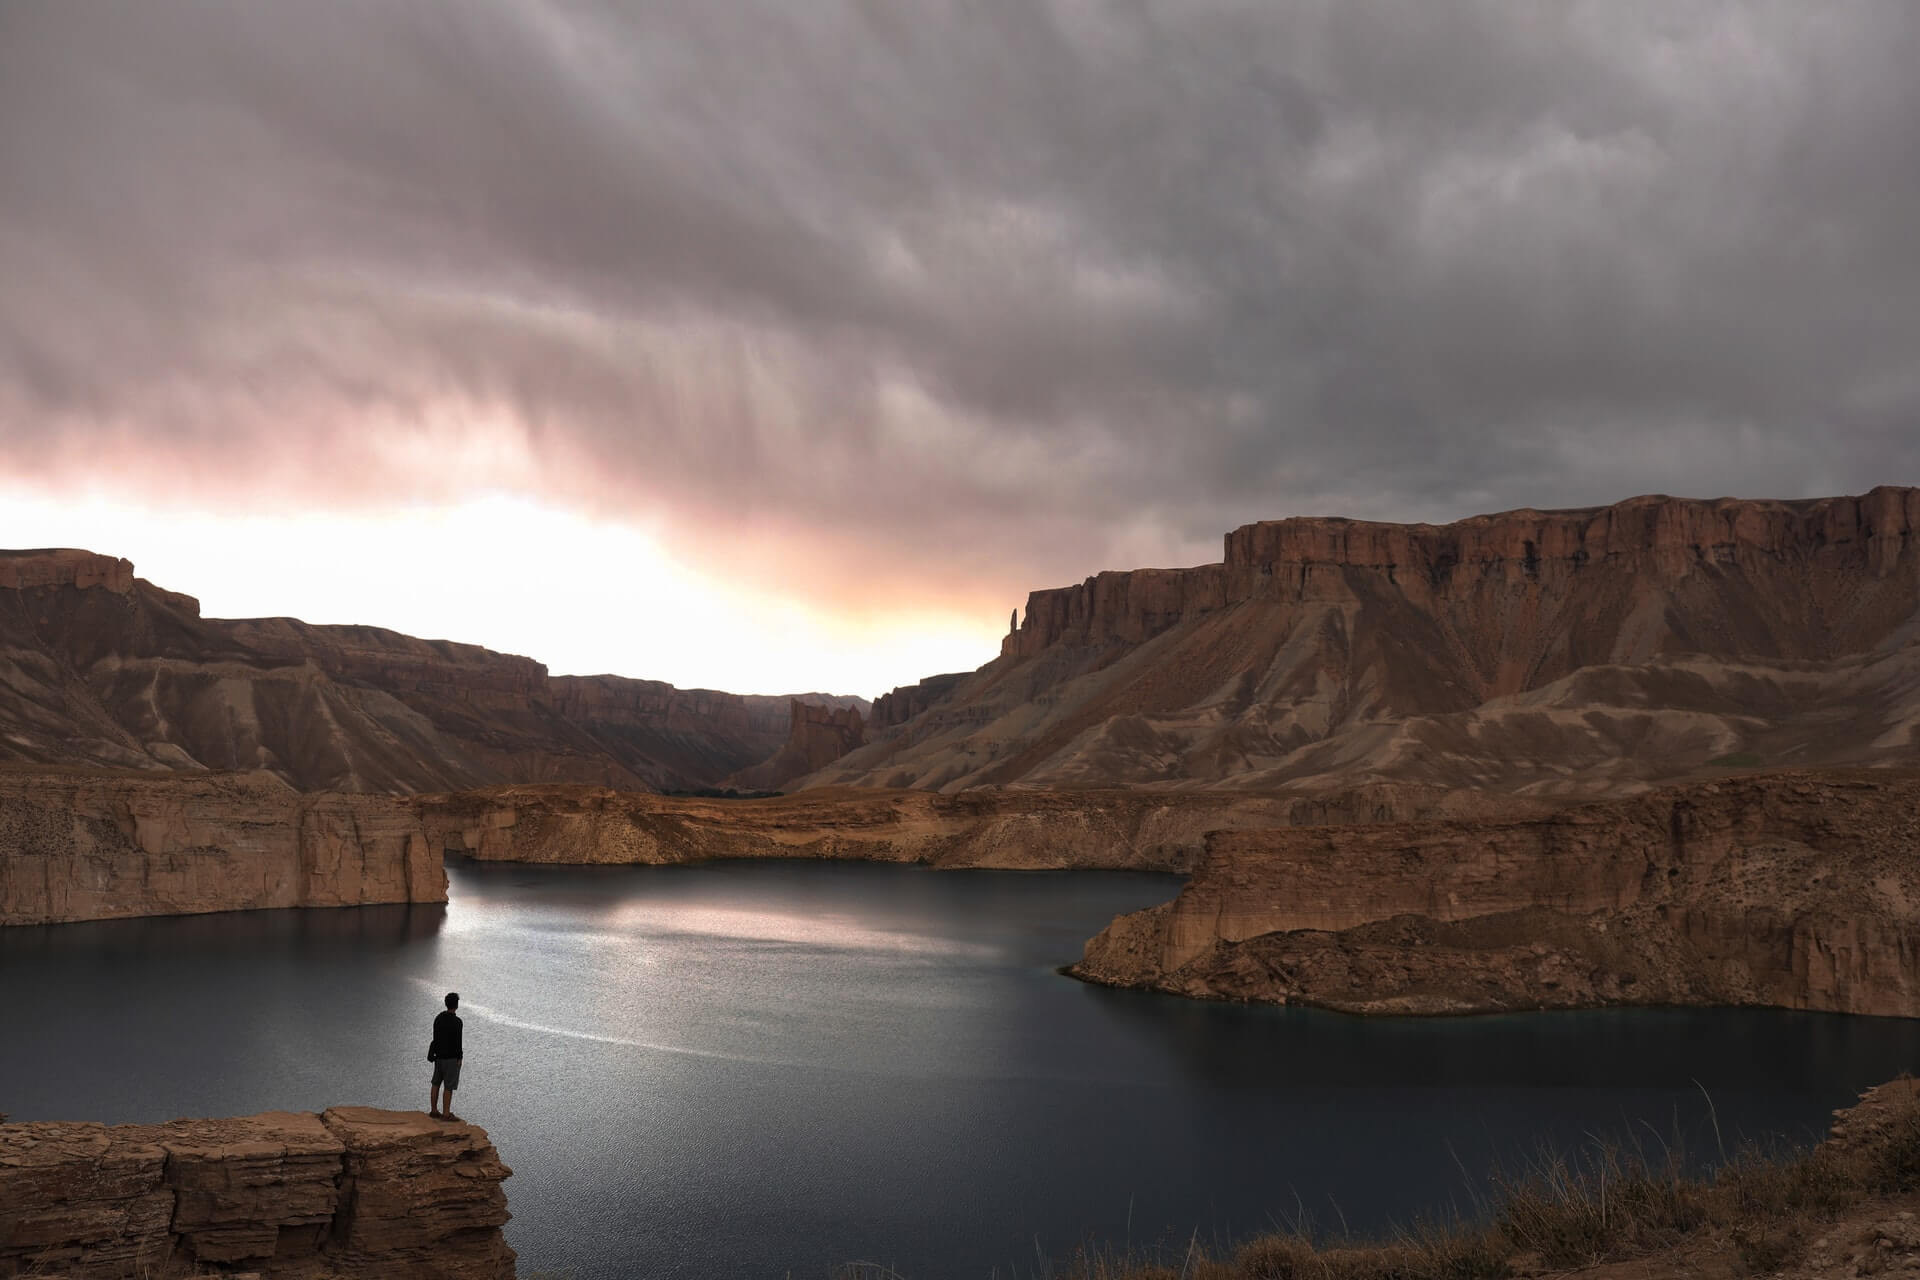 A backpacker in Afghanistan gazes out over a lake in Band-e-Amir National Park.